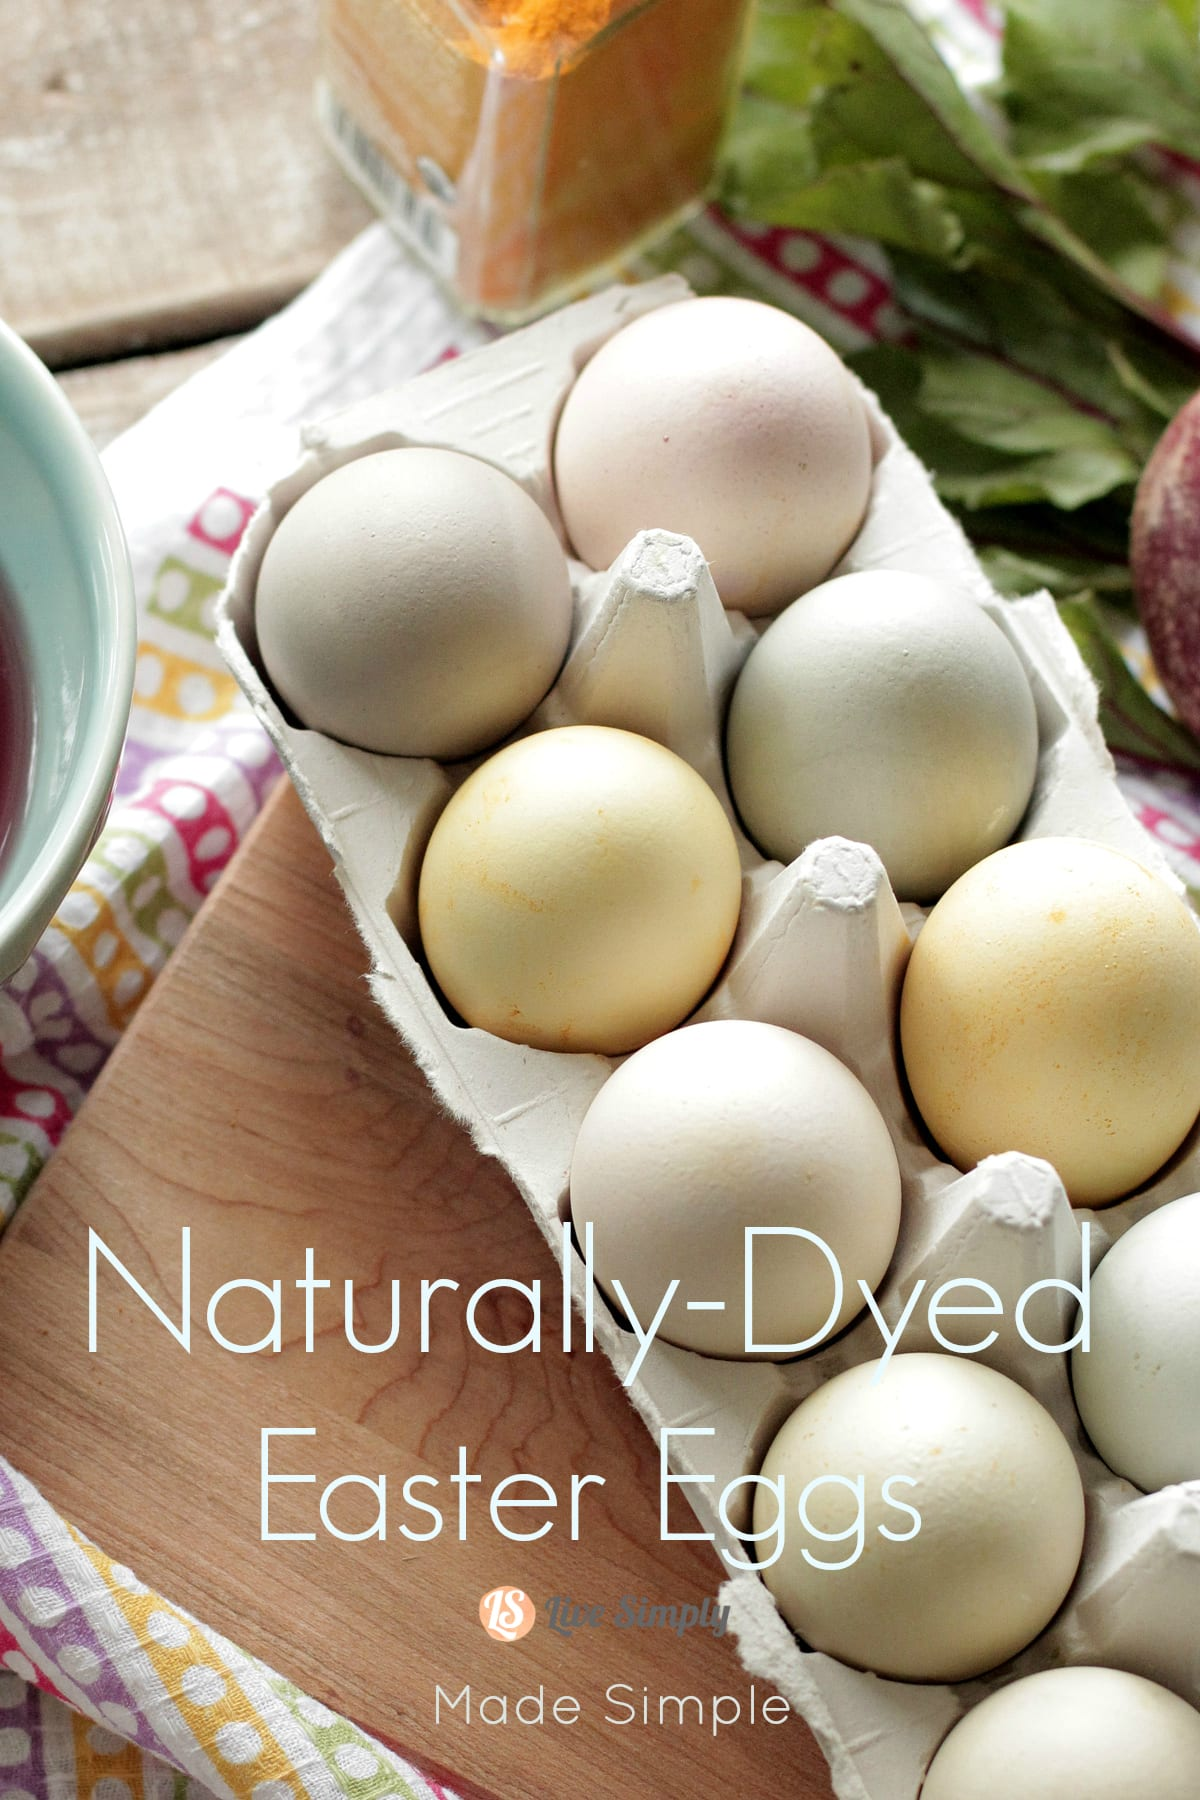 Simple Naturally Dyed Easter Eggs - Live Simply